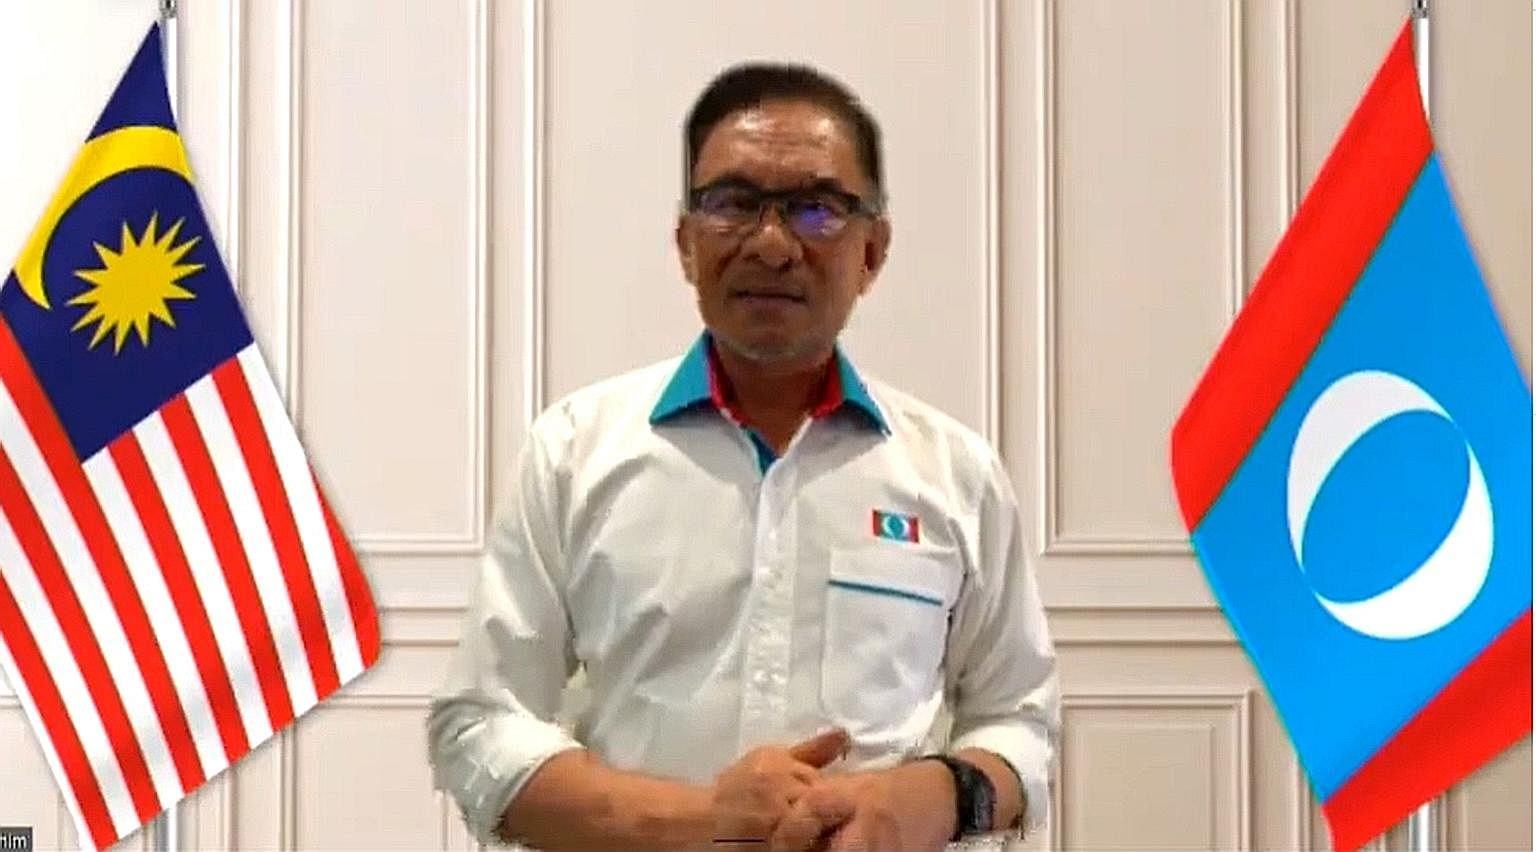 Mr Anwar Ibrahim criticising the government's handling of the Covid-19 crisis, in a special online address yesterday after the PKR virtual congress was last Friday blocked by the authorities.